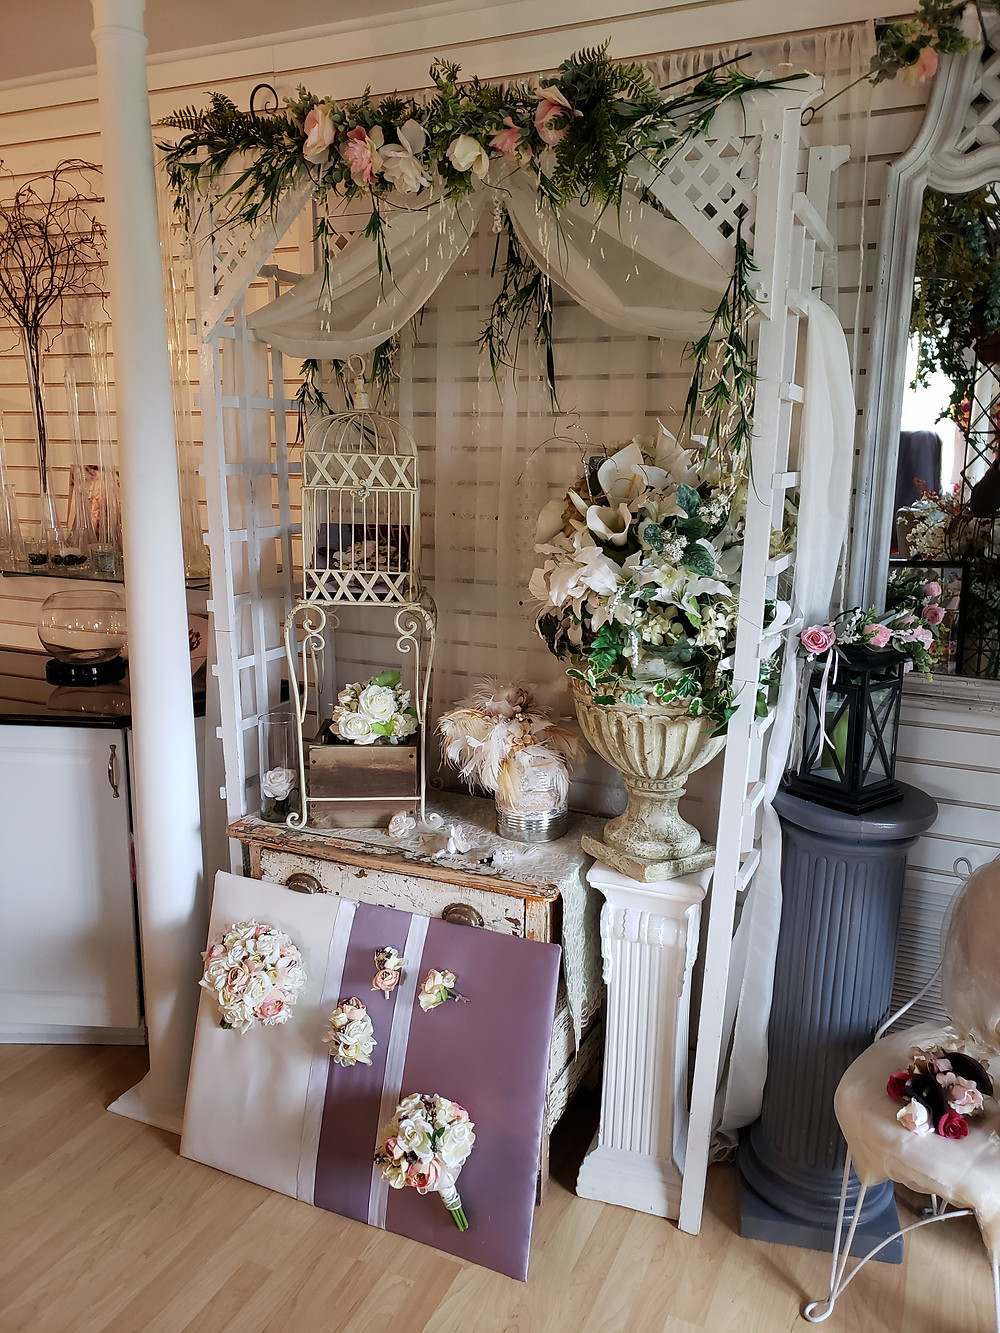 A white lattice arch with a display of white-based wedding flower bouquets.